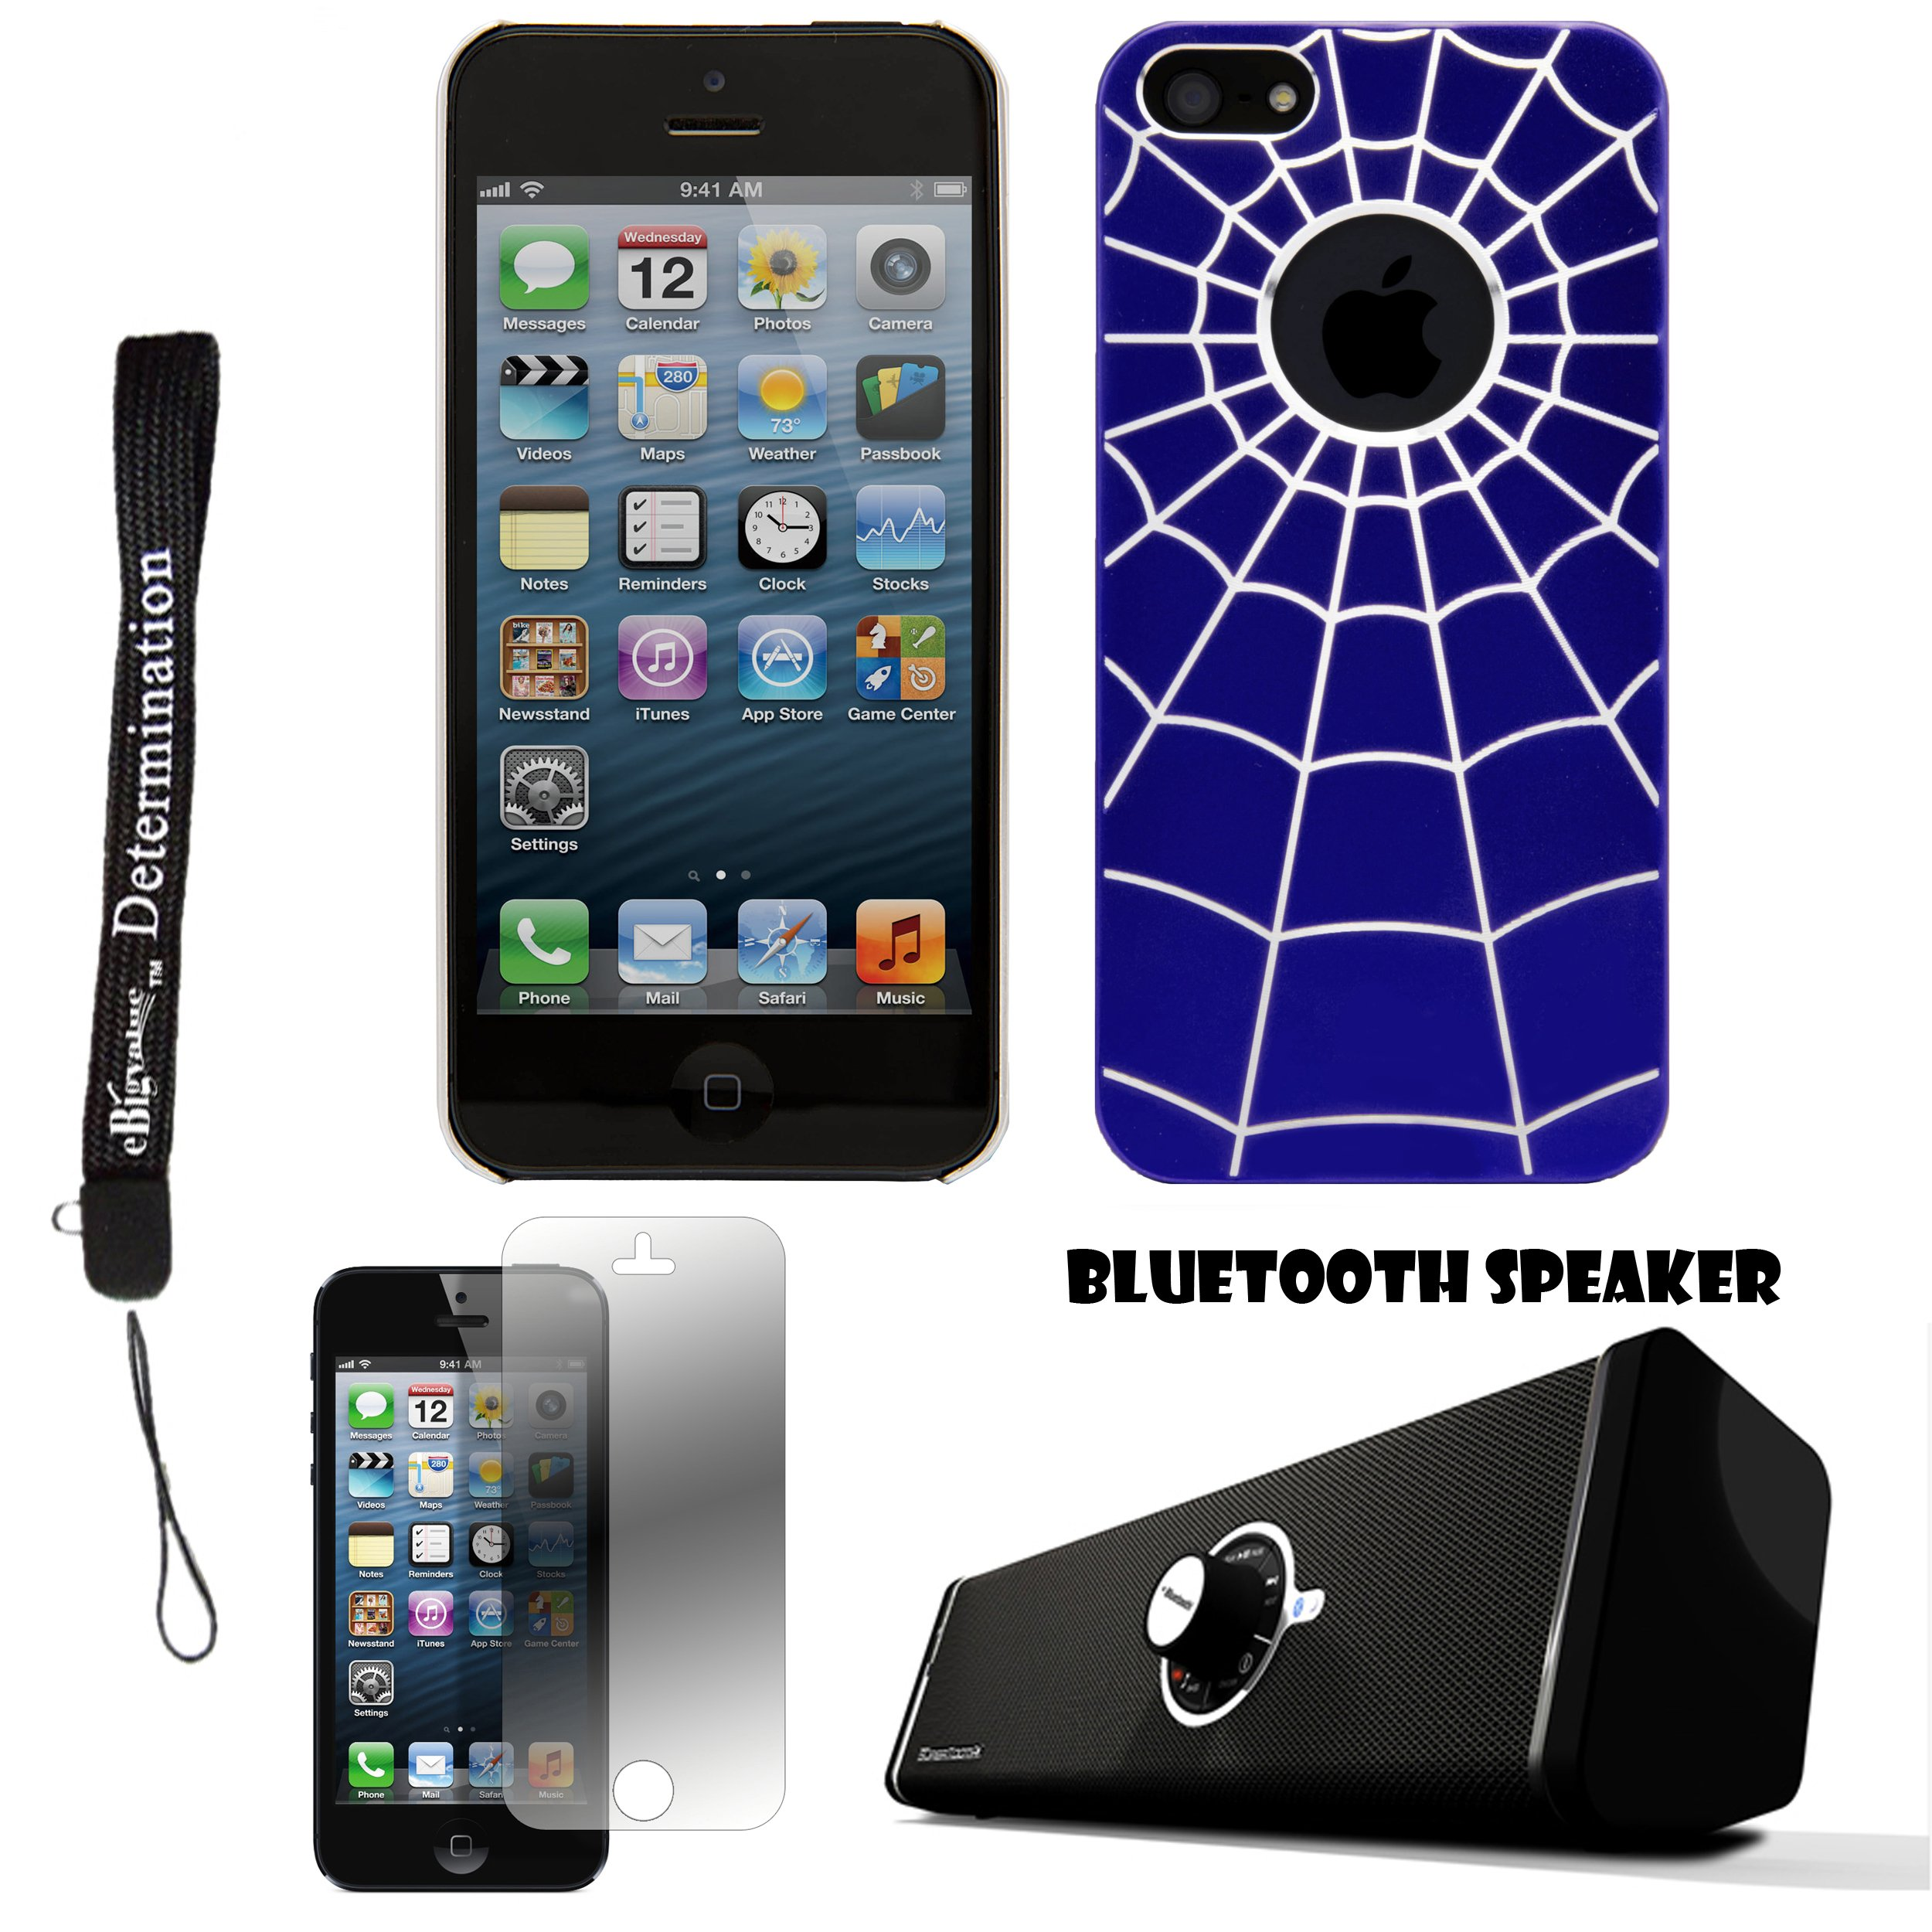 Blue Spider Web Design One-Piece Back Protective Cover For Apple iPhone 5 iOS (6) Smart Phone + Supertooth Disco Bluetooth Speaker with AUX Cable + Apple iPhone 5 Screen Protector + an eBigValue Determination Hand Strap